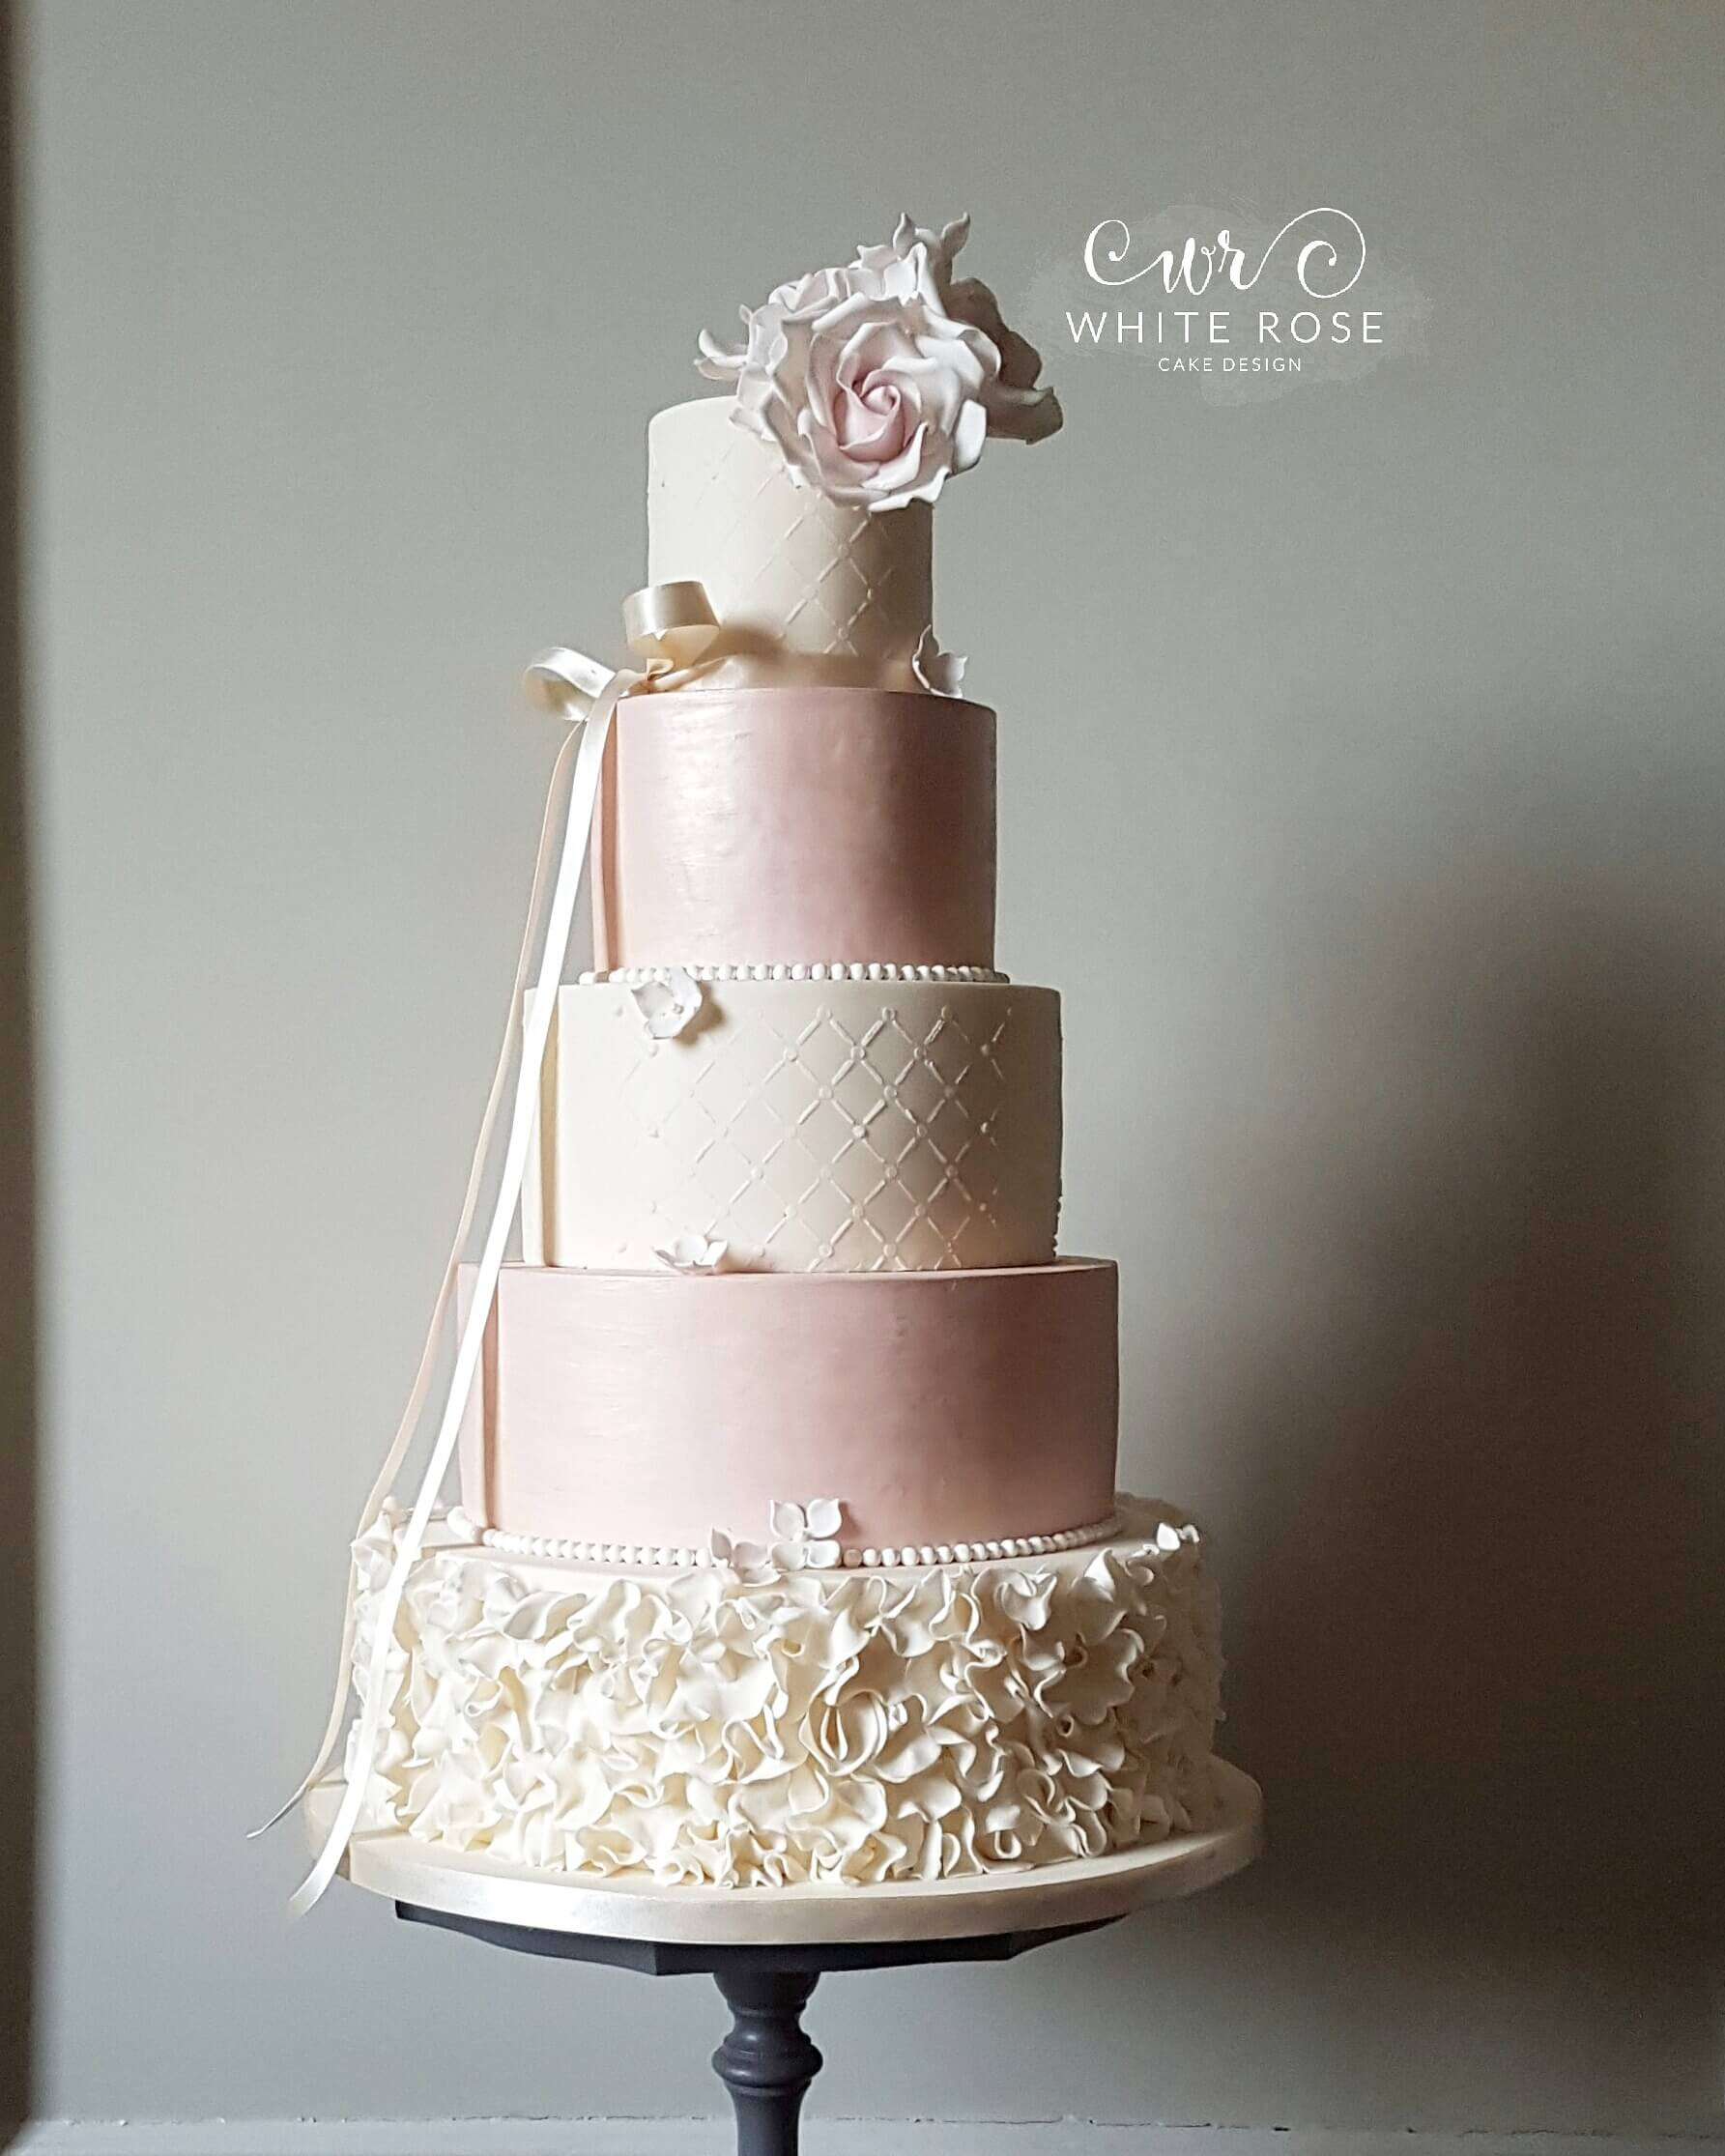 Five Tier Pink and Ivory Ruffles Wedding Cake with Blush Roses by White Rose Cake Design .com West Yorkshire Cake Maker